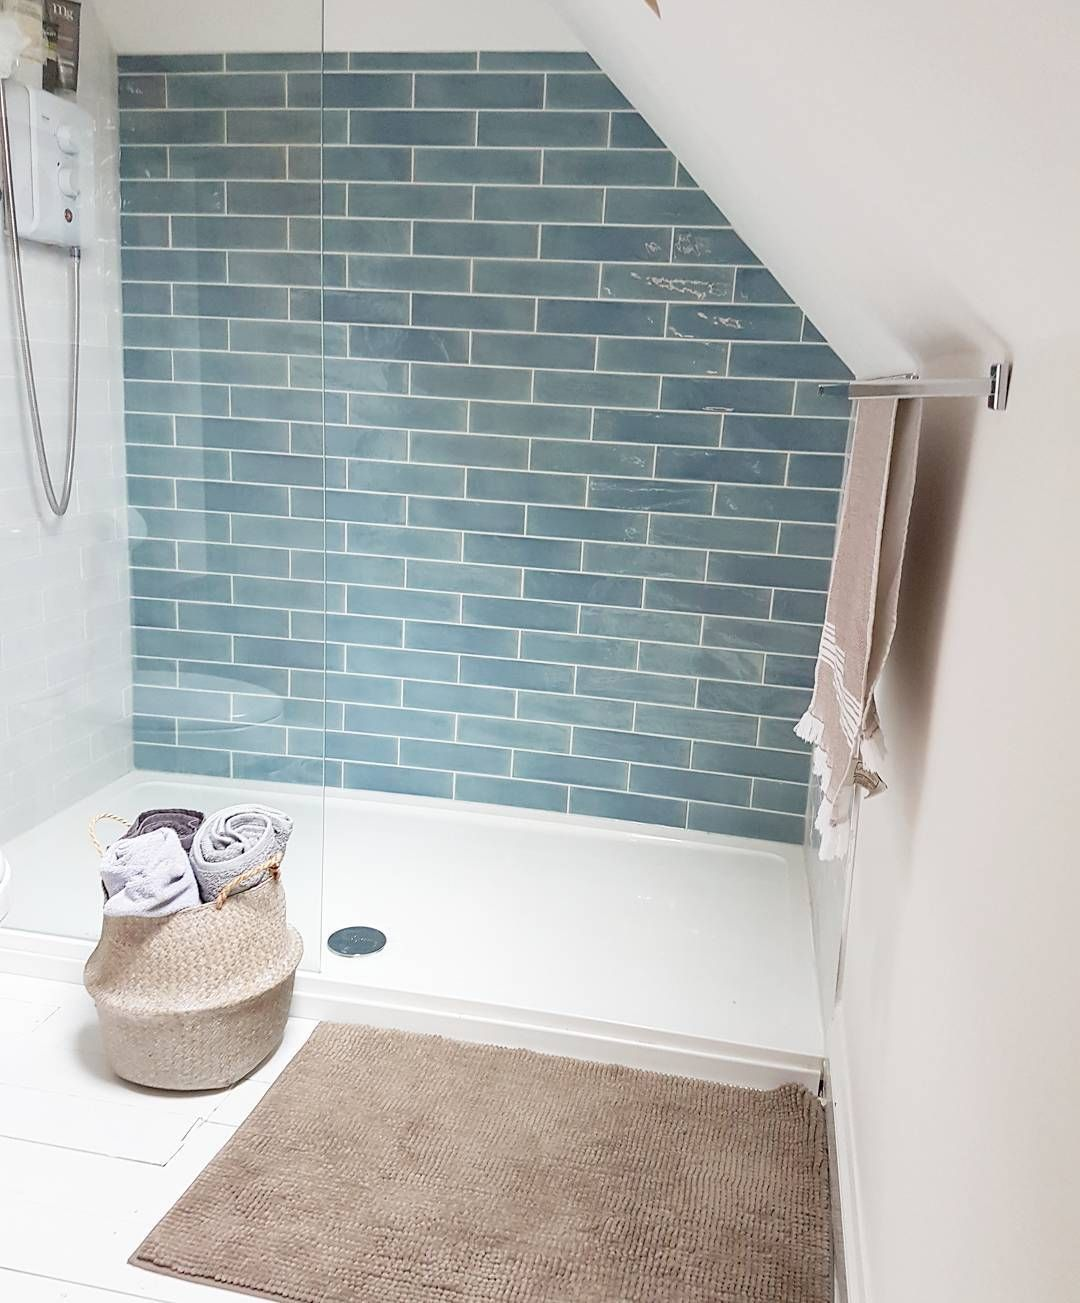 We shifted this shower room layout around to incorporate an XL ...